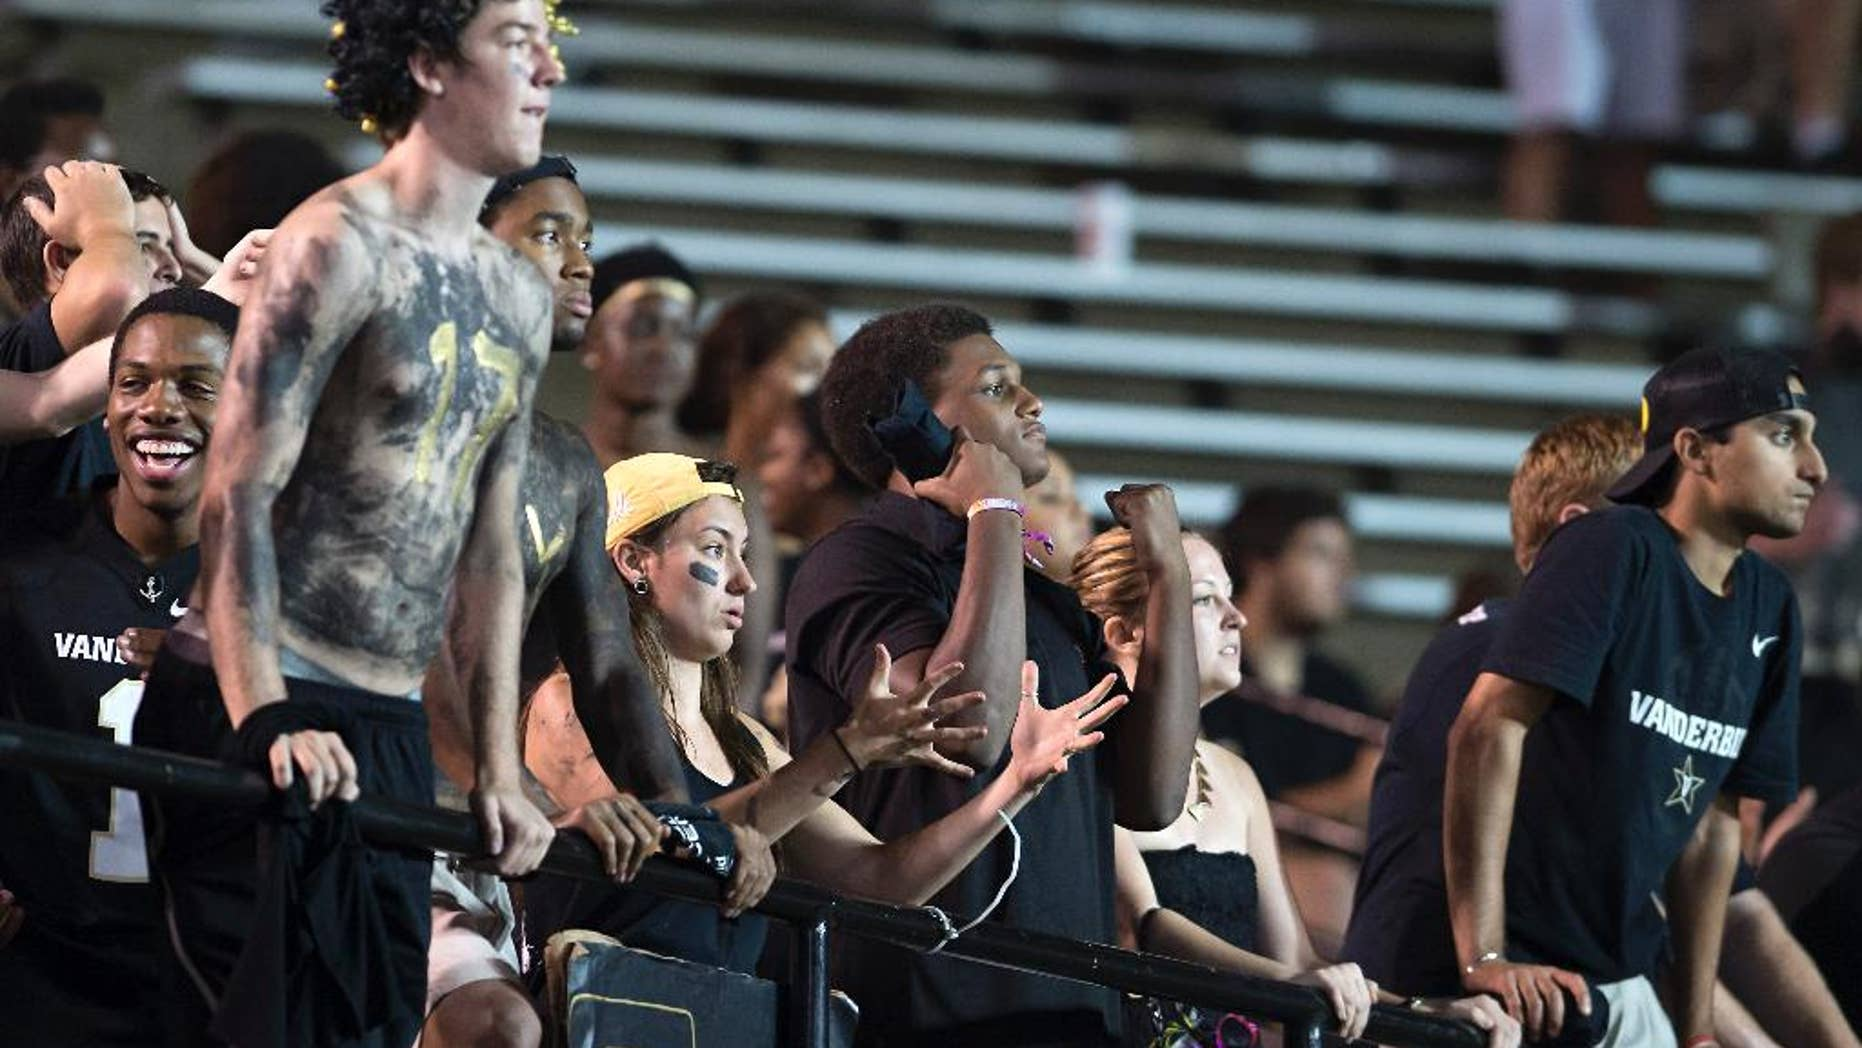 Vanderbilt fans react to a dropped pass in the fourth quarter of an NCAA college football game Friday, Aug. 29, 2014, in Nashville, Tenn. (AP Photo/Brian Powers)